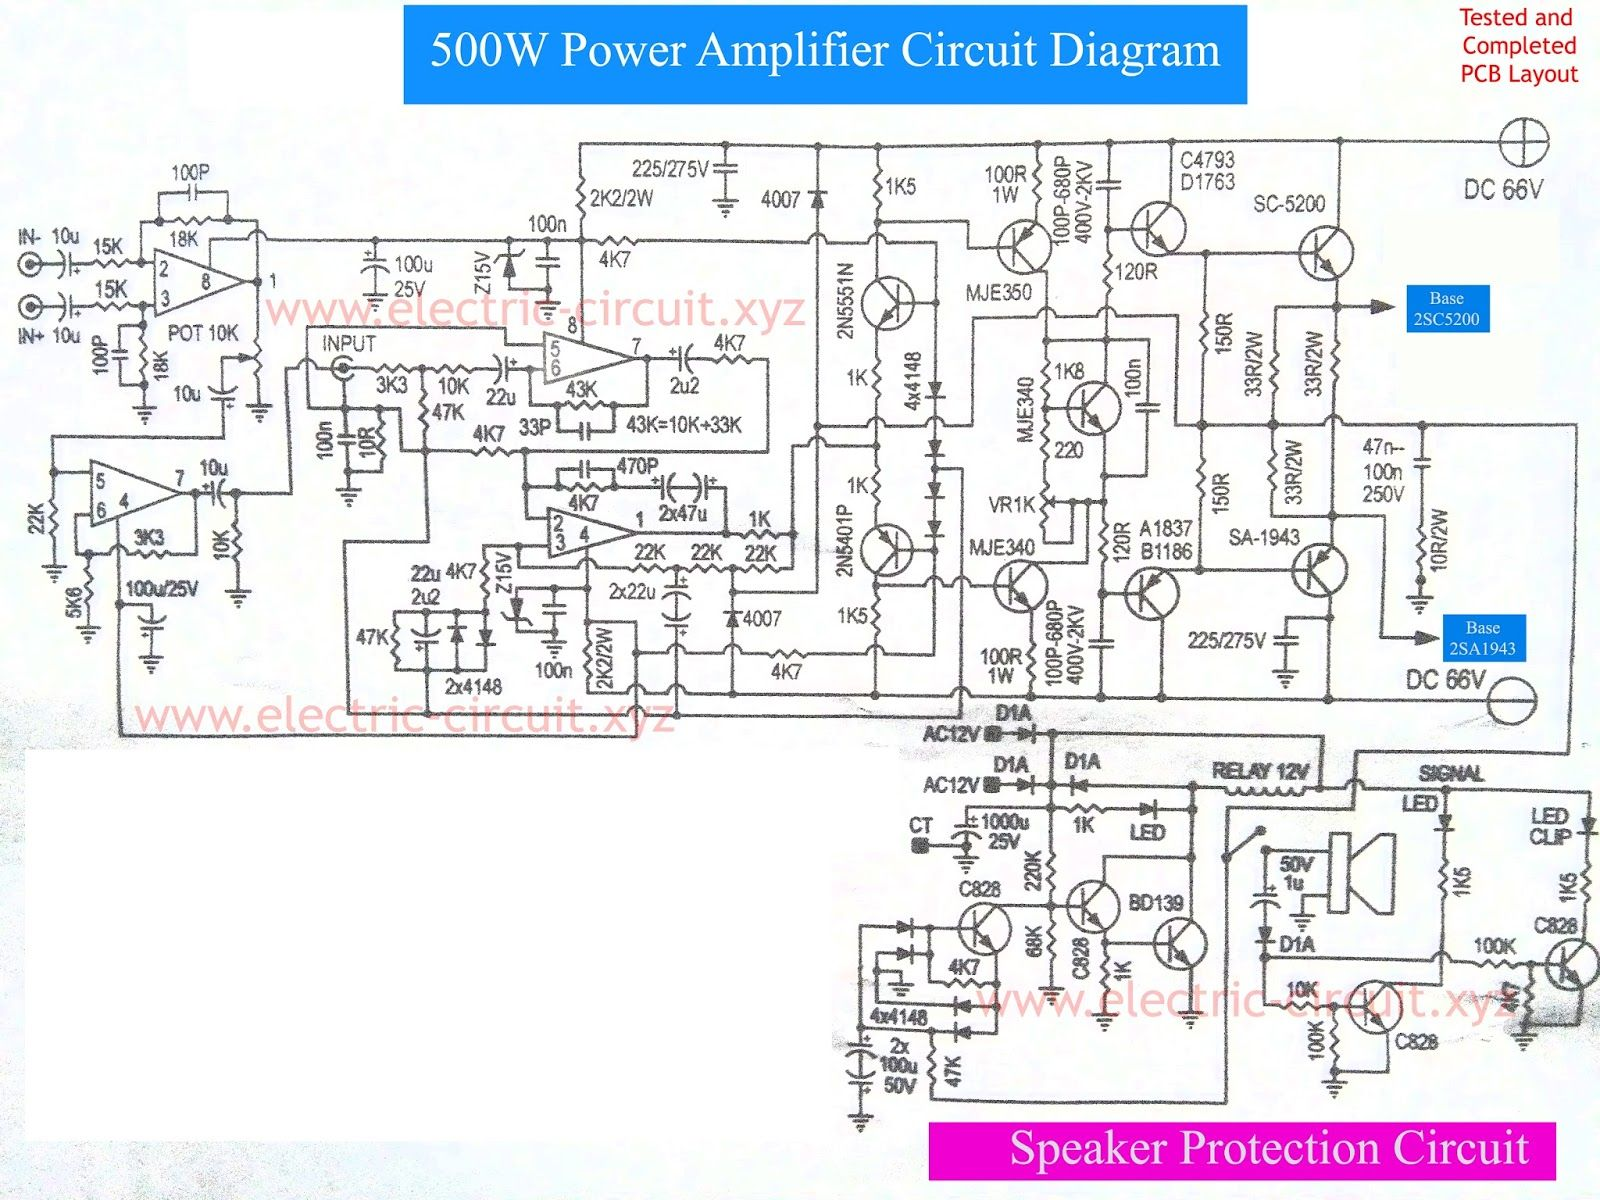 Power Amplifier 500W with Speaker Protection | AMPLIFIER